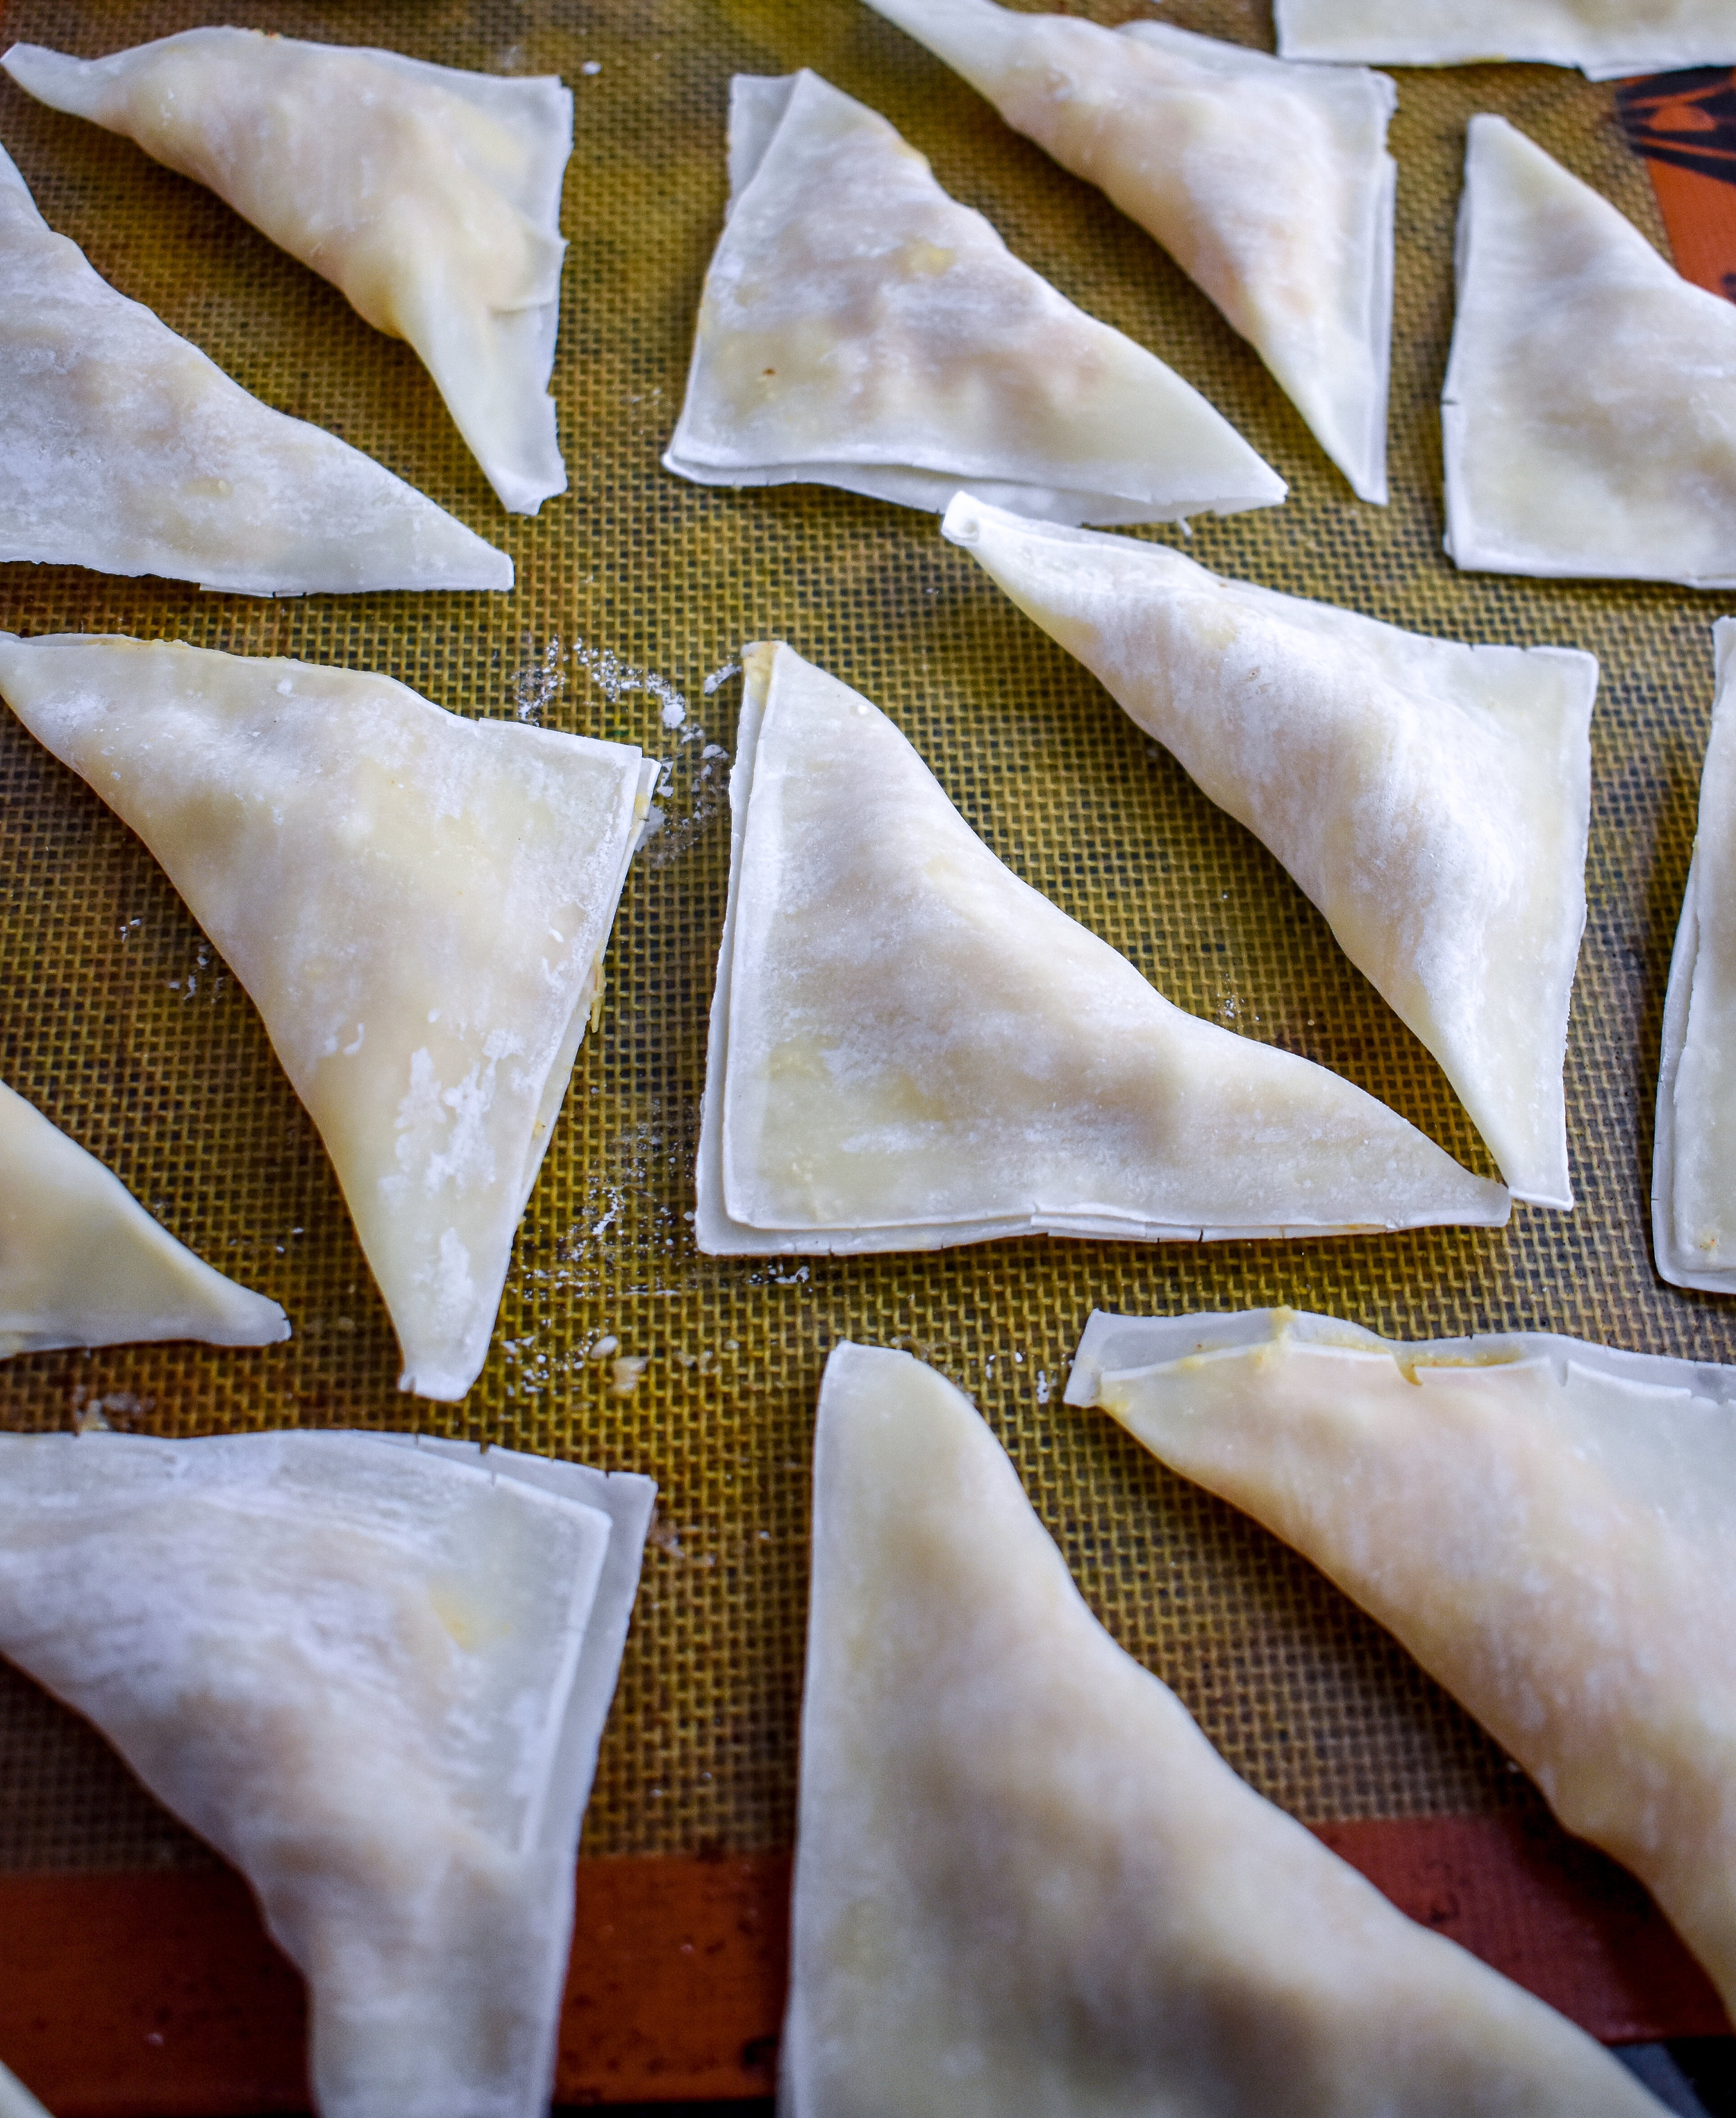 8. Line up your folded wontons on a silpat or parchment lined baking sheet and put into the oven for 15 minutes. Flip and bake another 10 minutes until the corners are golden brown and the skin has crisped.